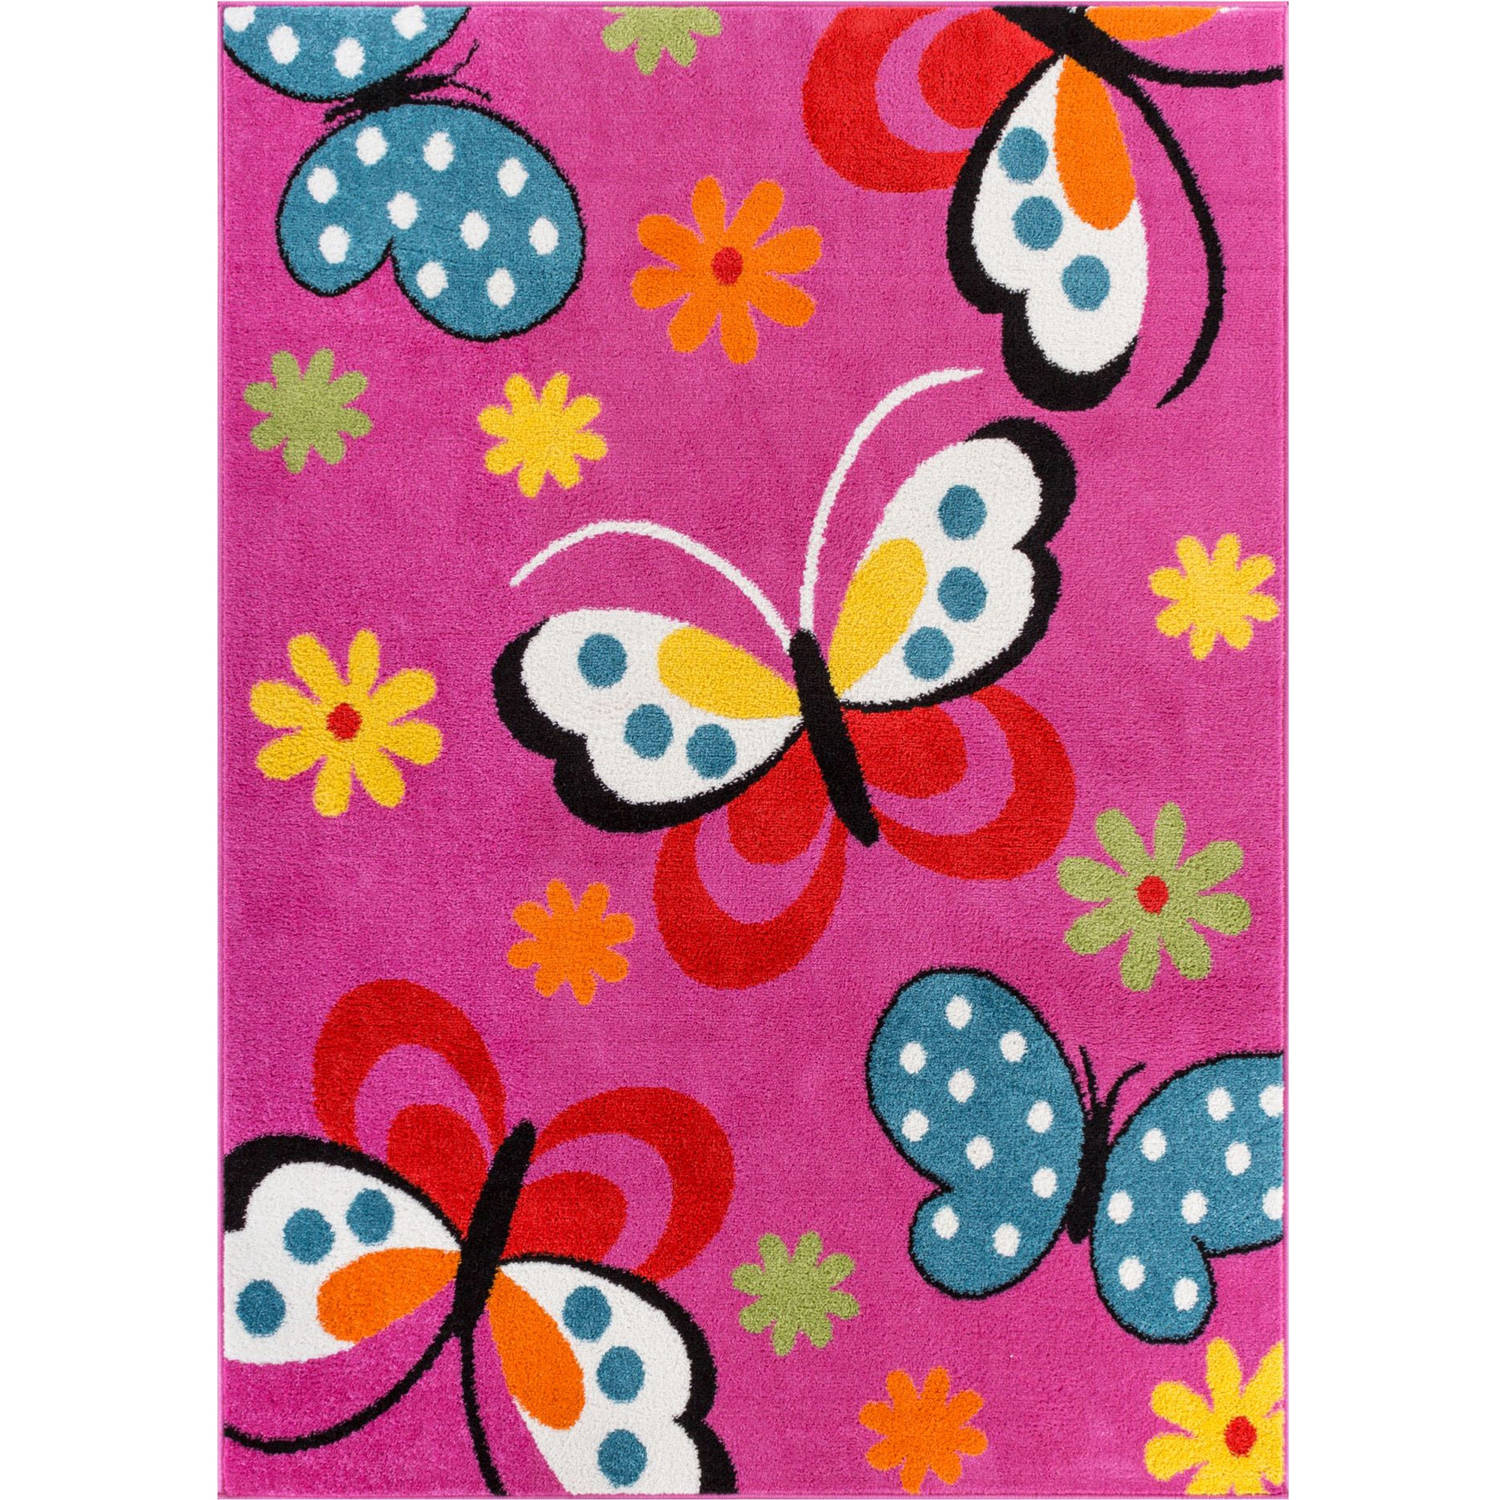 Well Woven Starbright Daisy Butterflies Kids Area Rug